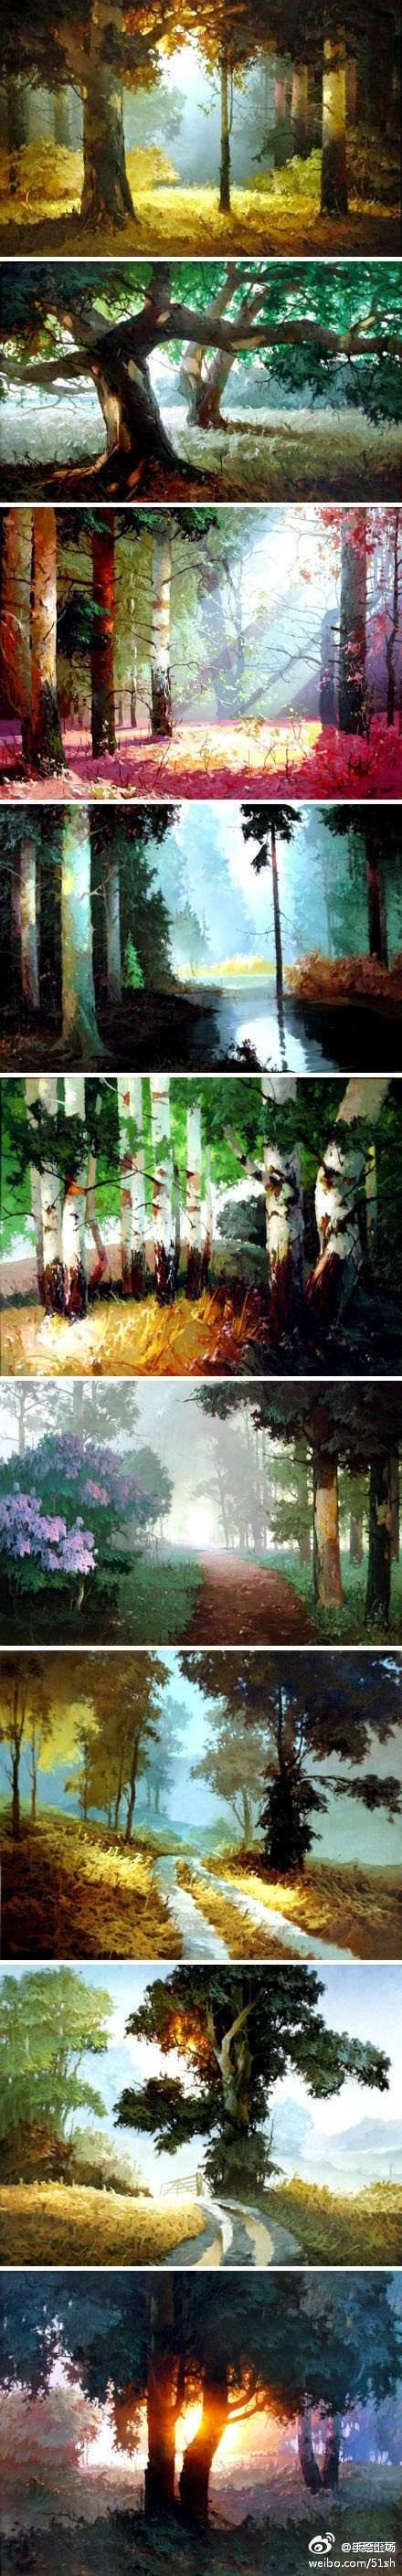 landschap..his work has an almost sinister undertone to it...like the forest holds back some evil!!! i love it!!